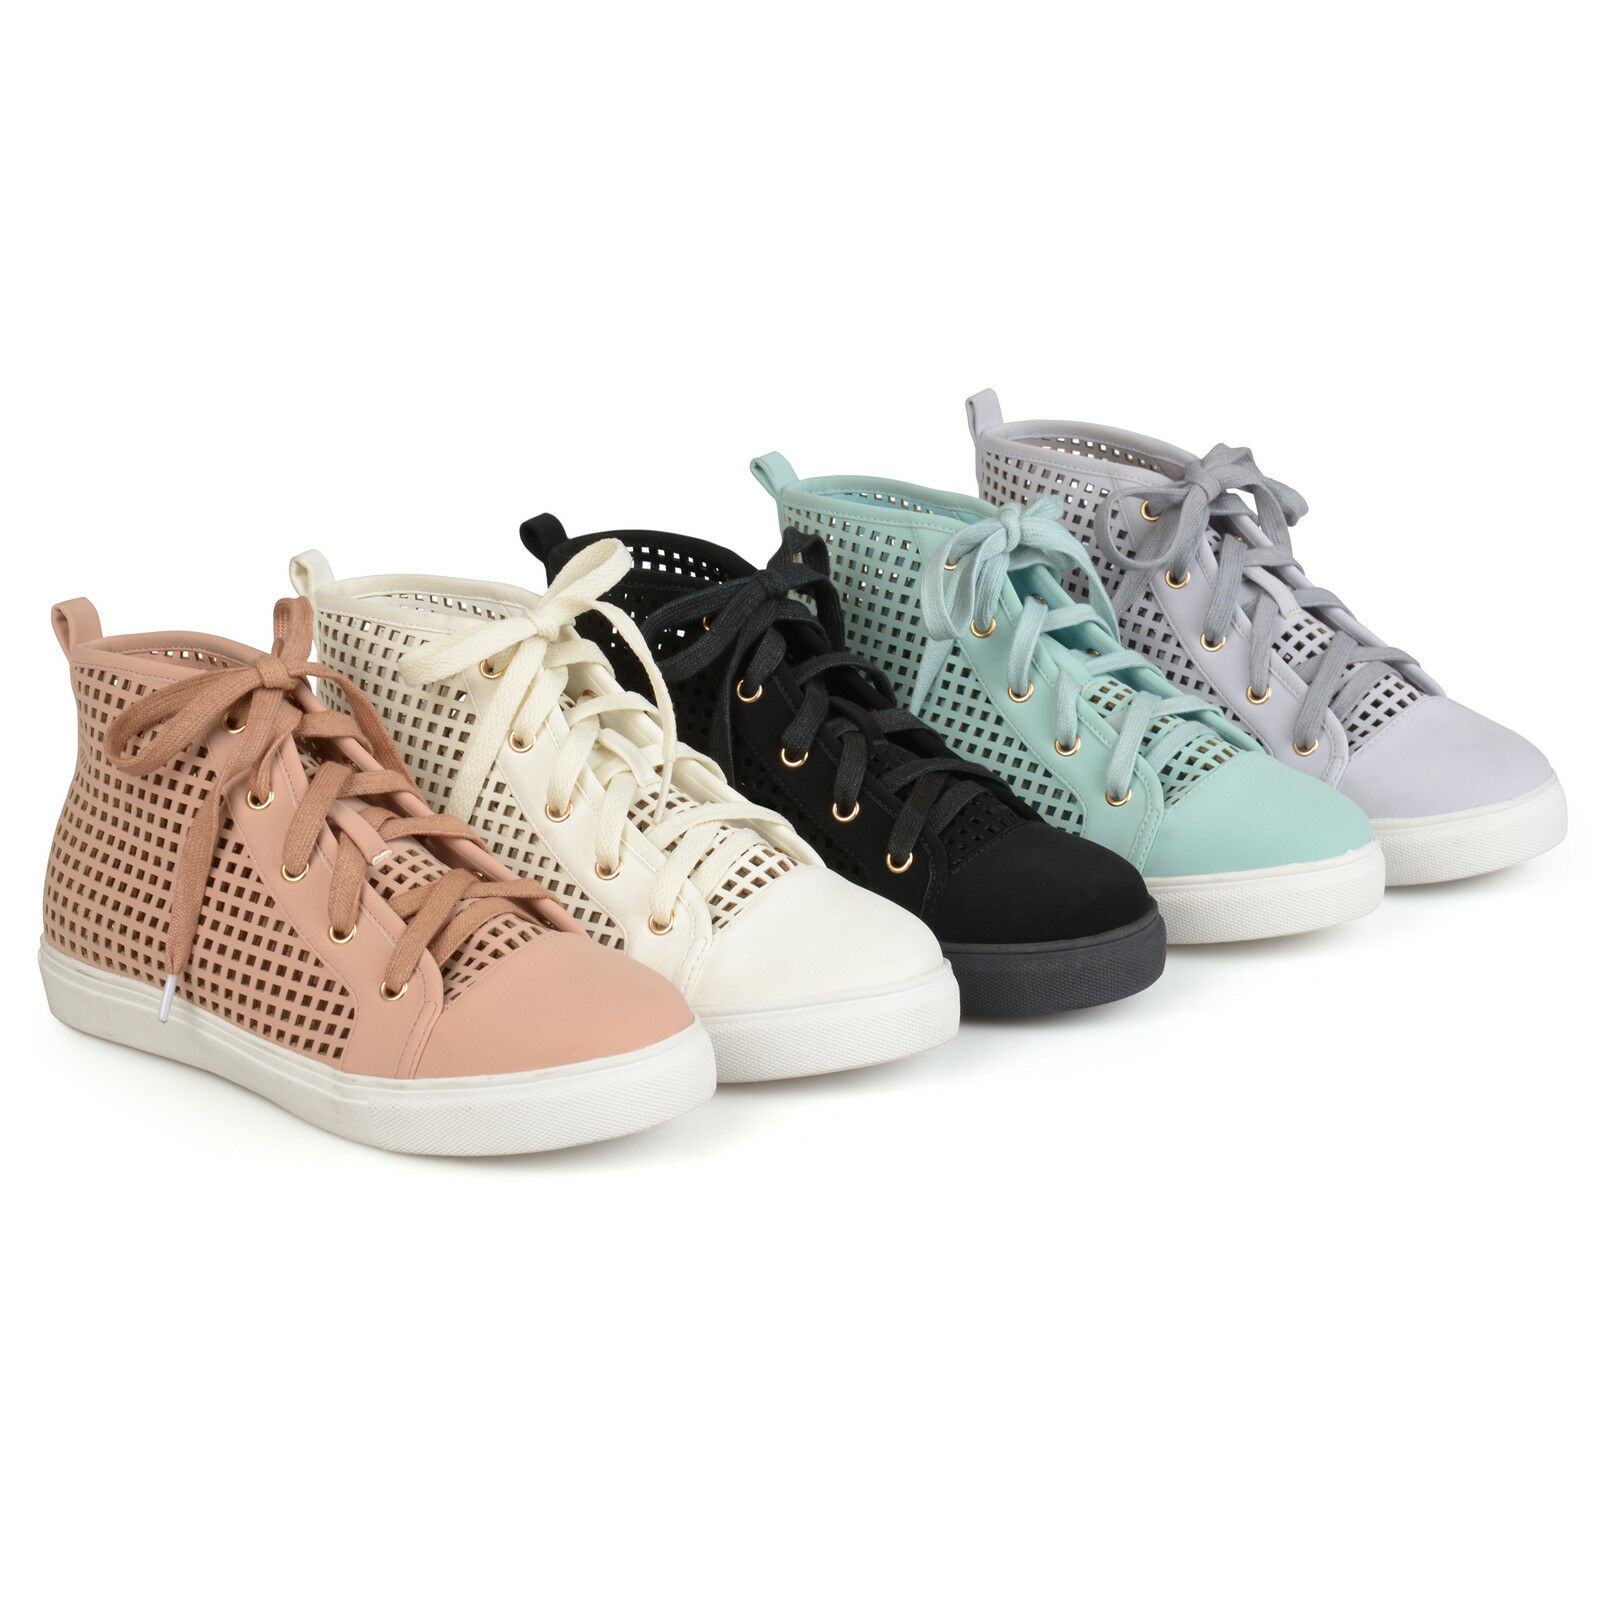 Brinley High Co Womens Faux Leather High Brinley top Lace up Laser cut Sneakers New 1c790e